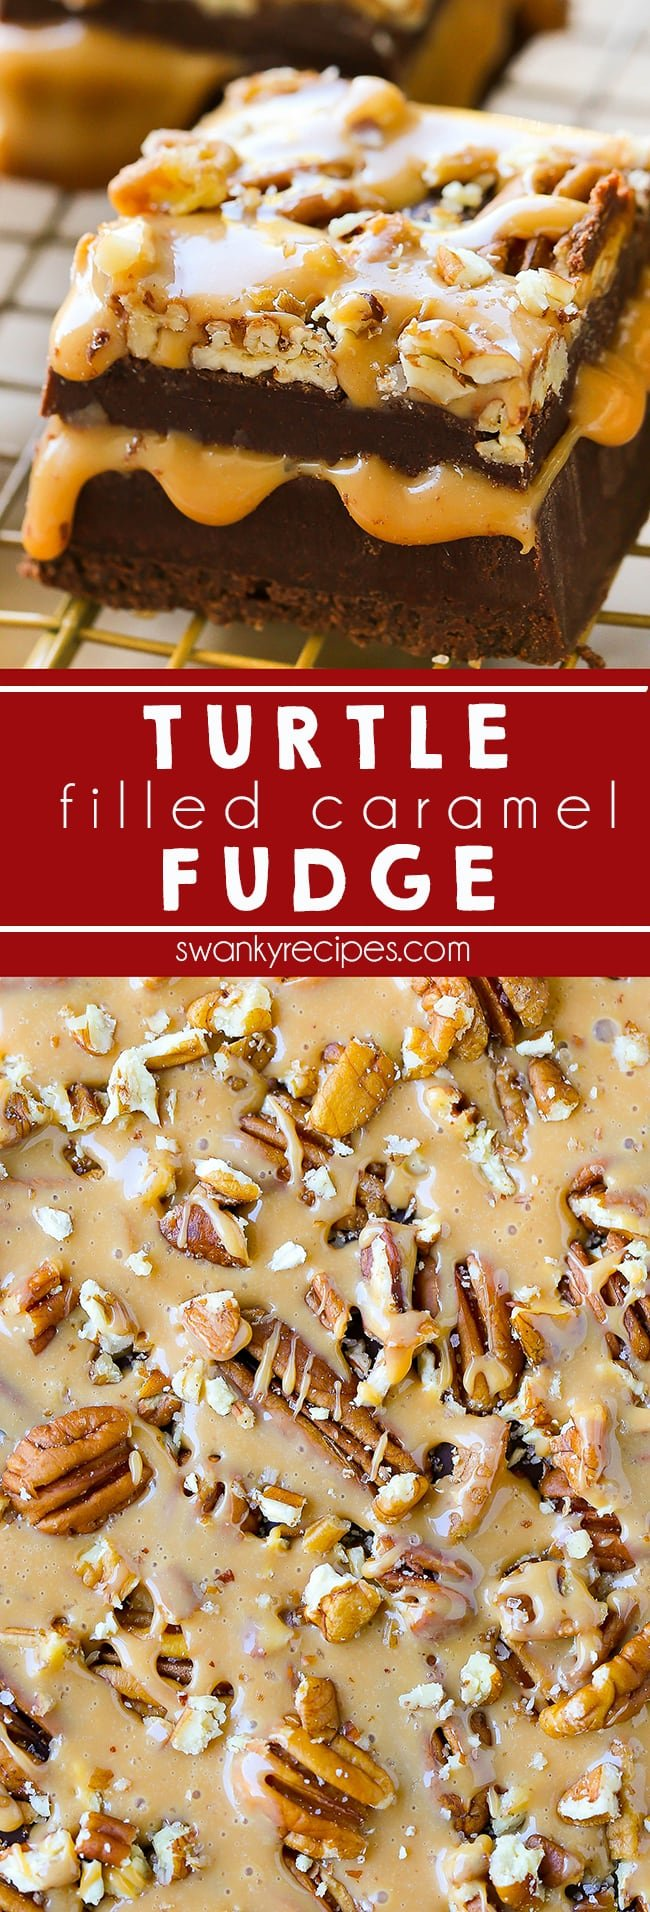 This Turtle Fudge is filled with salted caramel, pecans, and chocolate. A caramel lover's decadent dessert for Christmas. Everyone loves this chocolate fudge recipe for the holidays. Turtle Fudge I Fudge I Christmas Fudge I Christmas Recipes